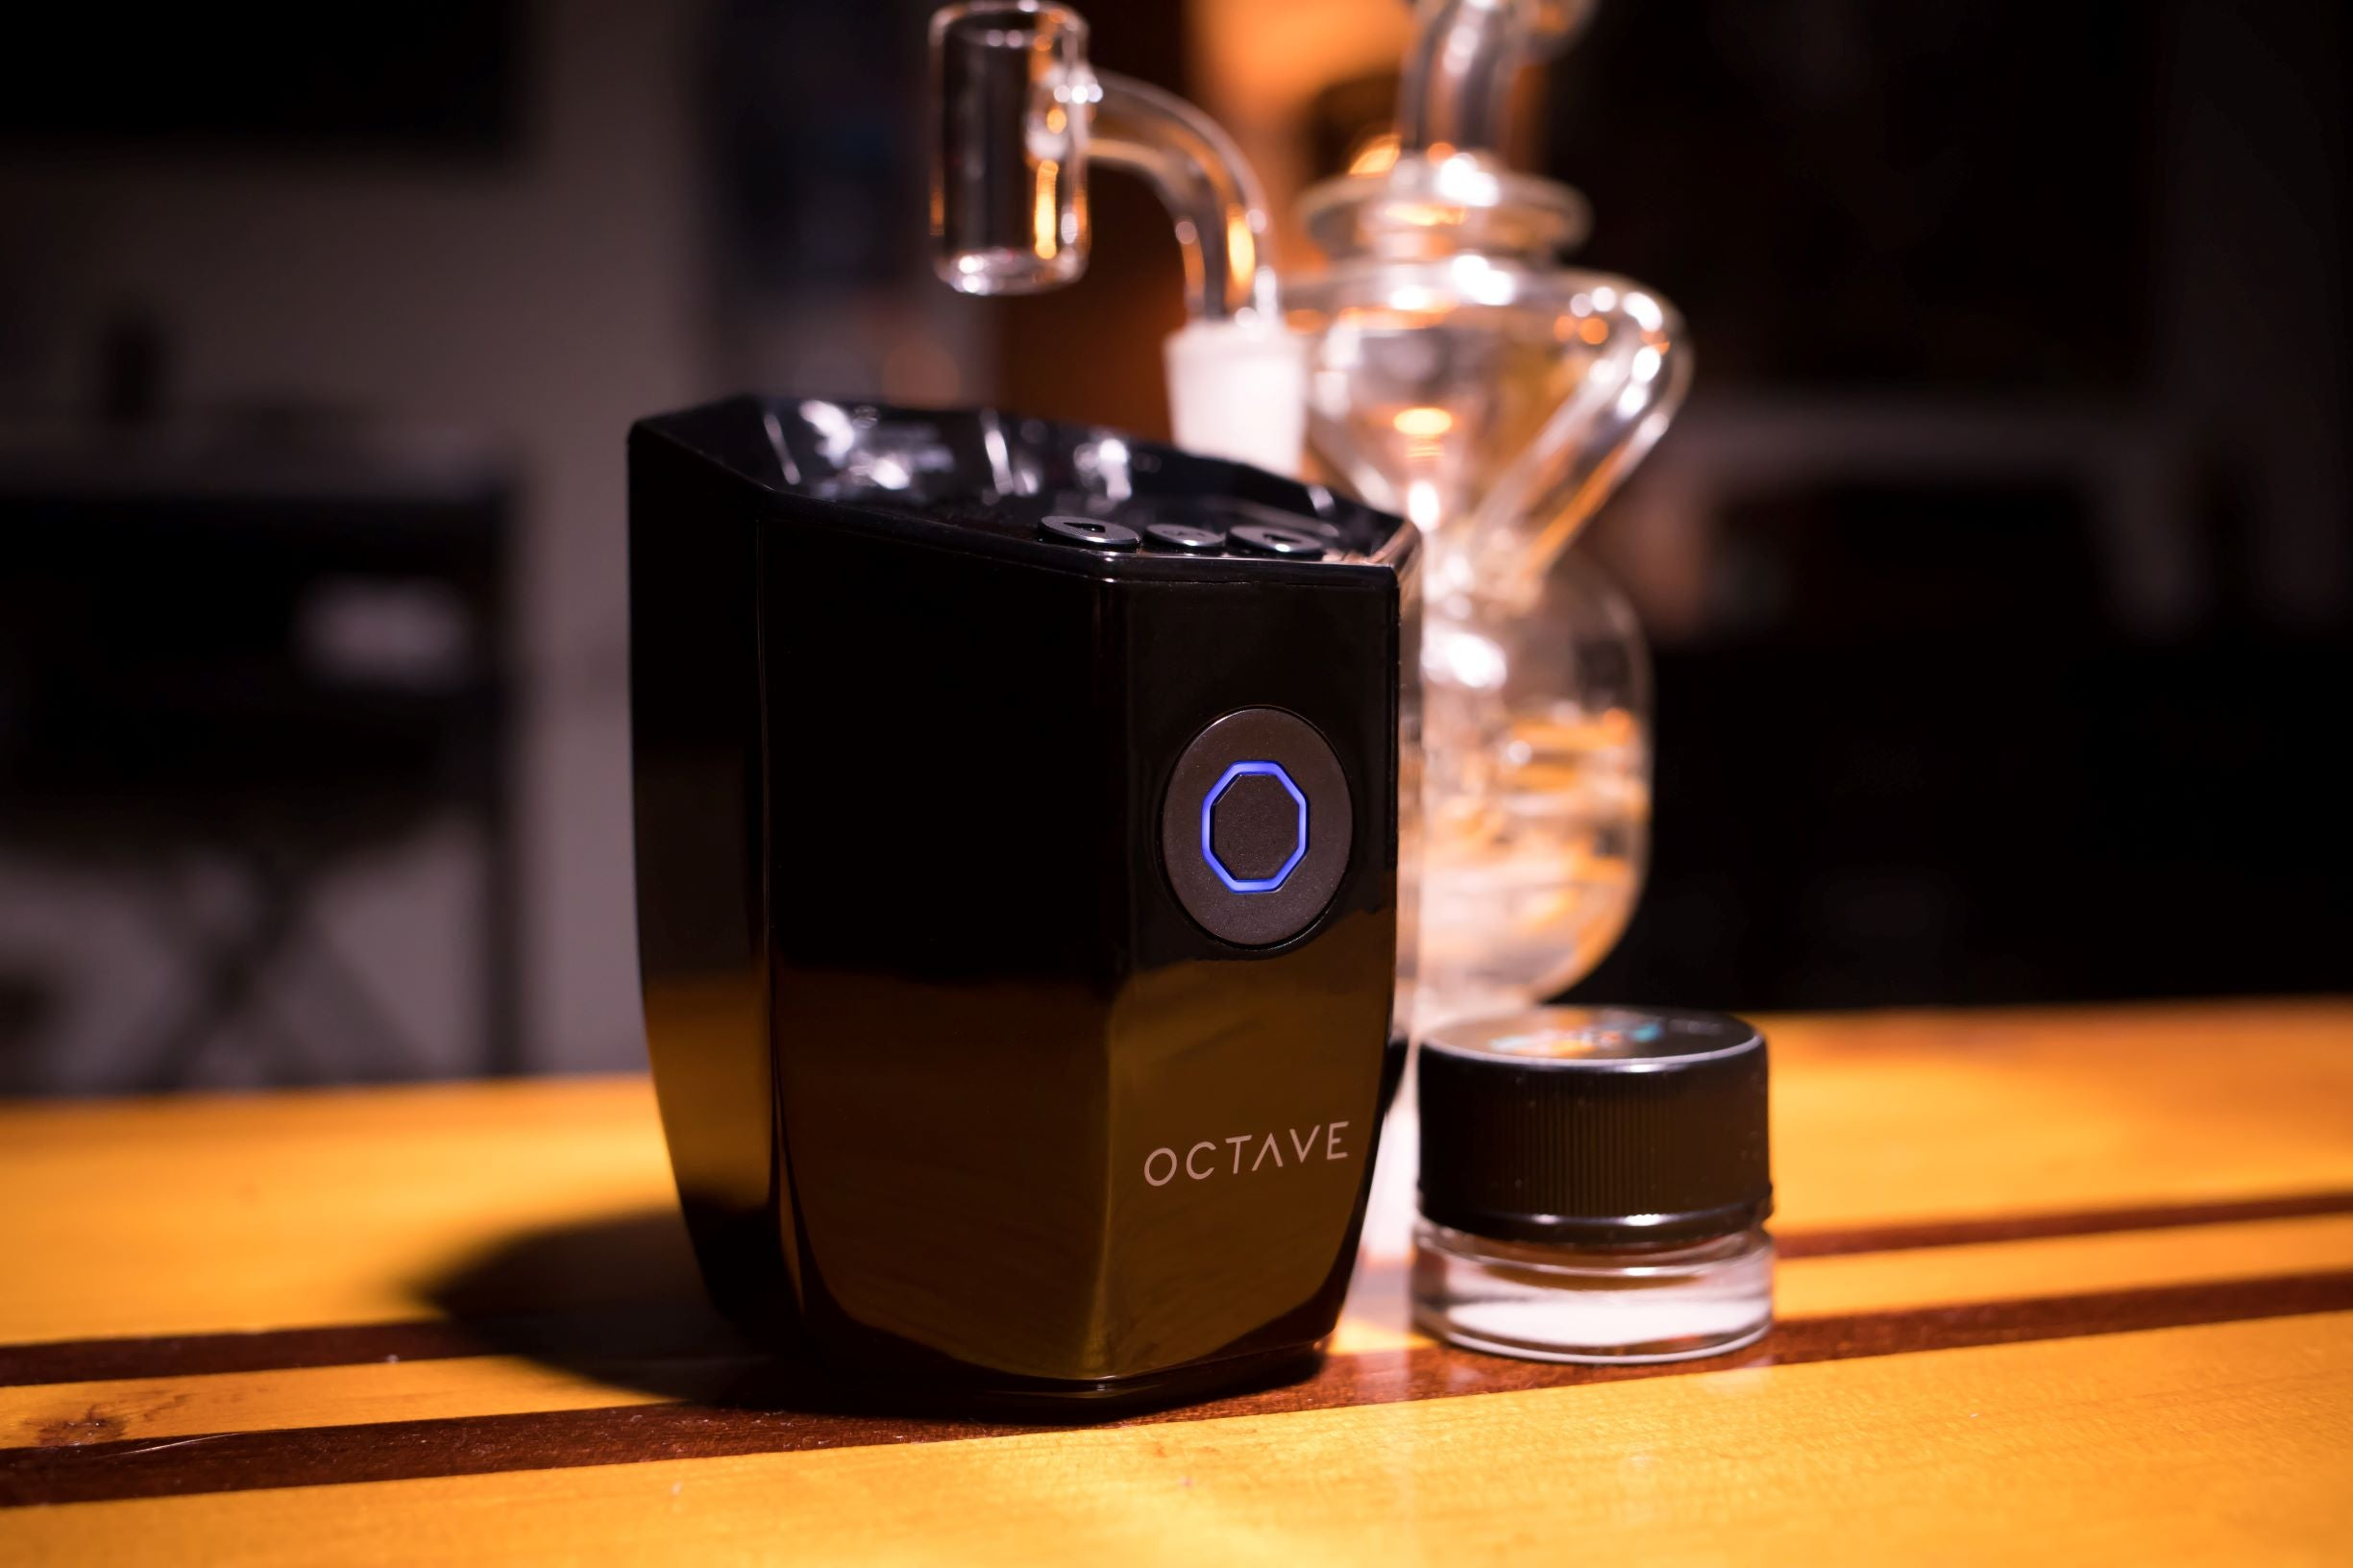 the octave terp timer provides hands-free precision on a budget